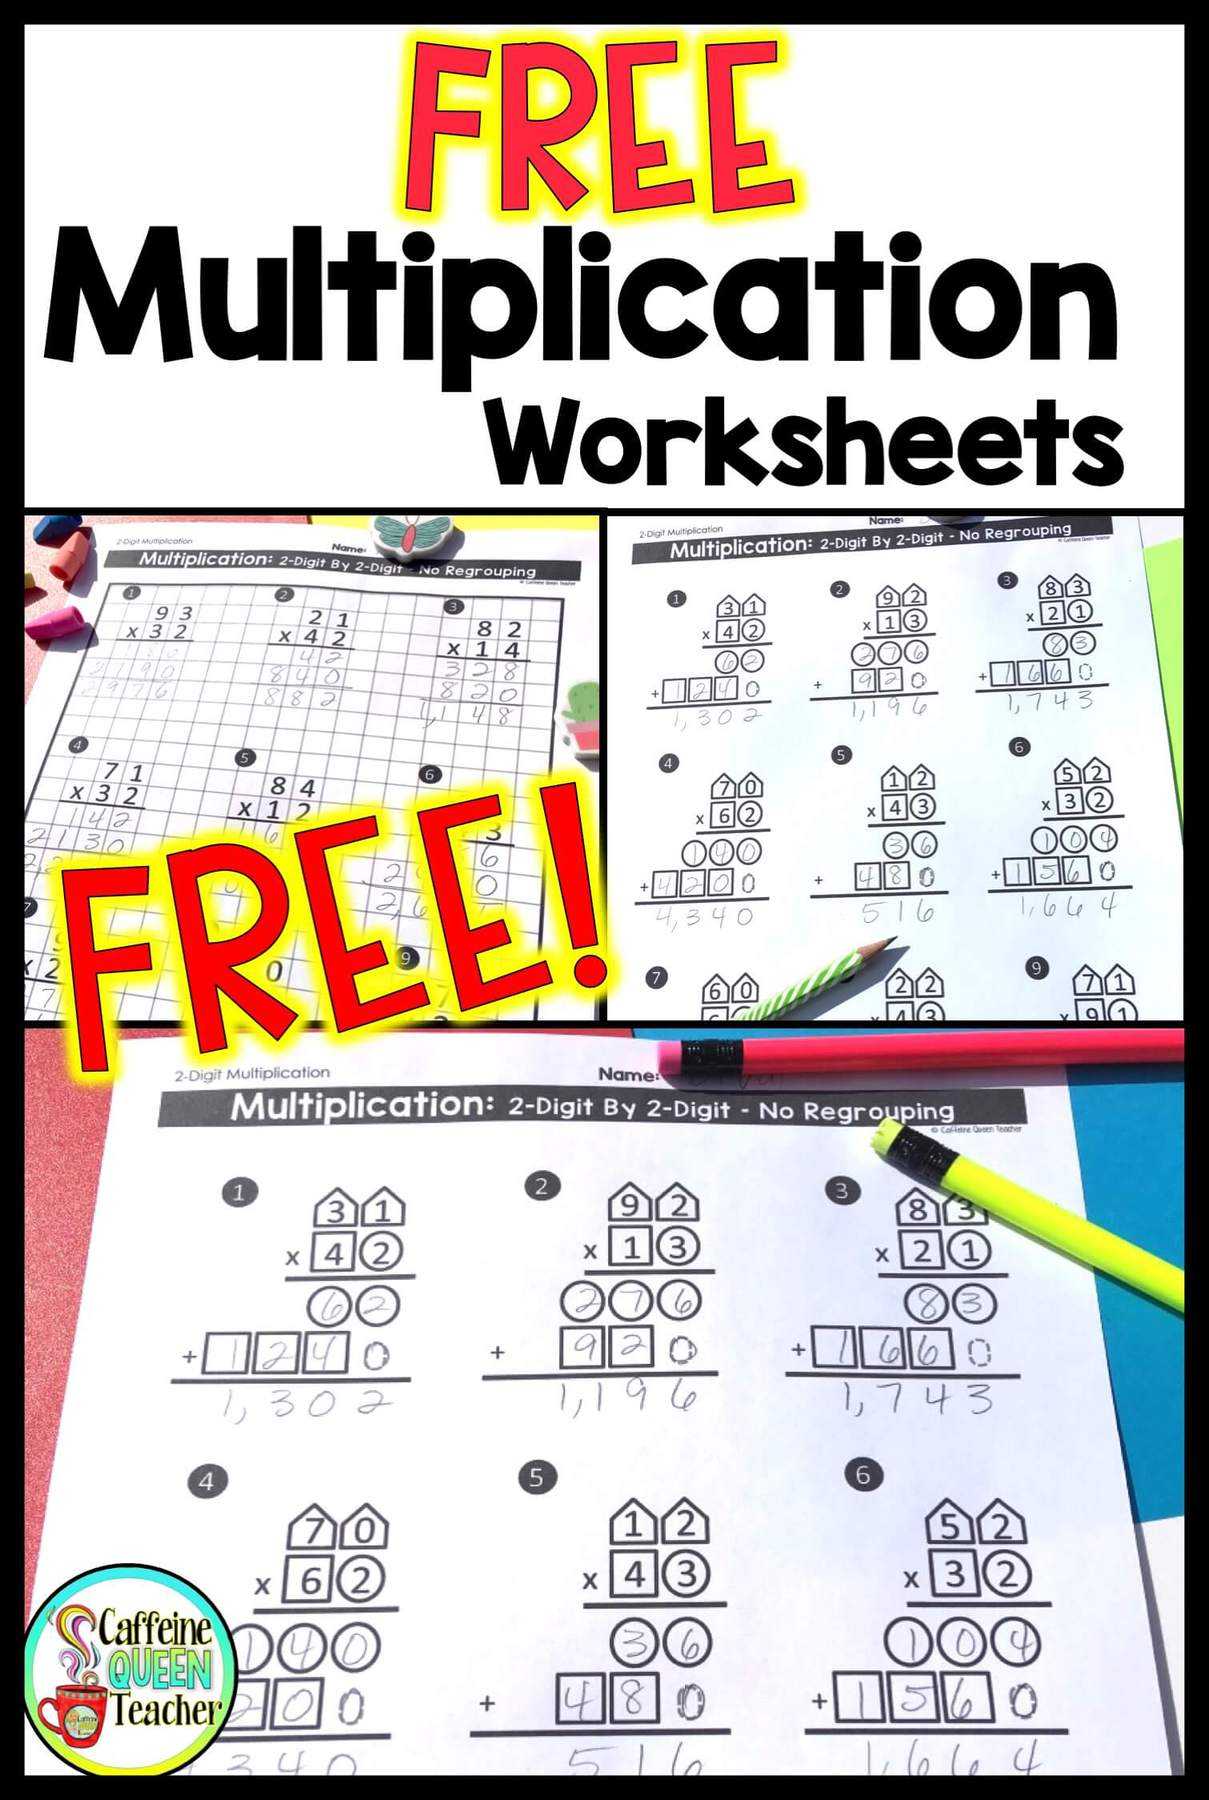 small resolution of 2-Digit Multiplication Worksheets: Differentiated - Caffeine Queen Teacher